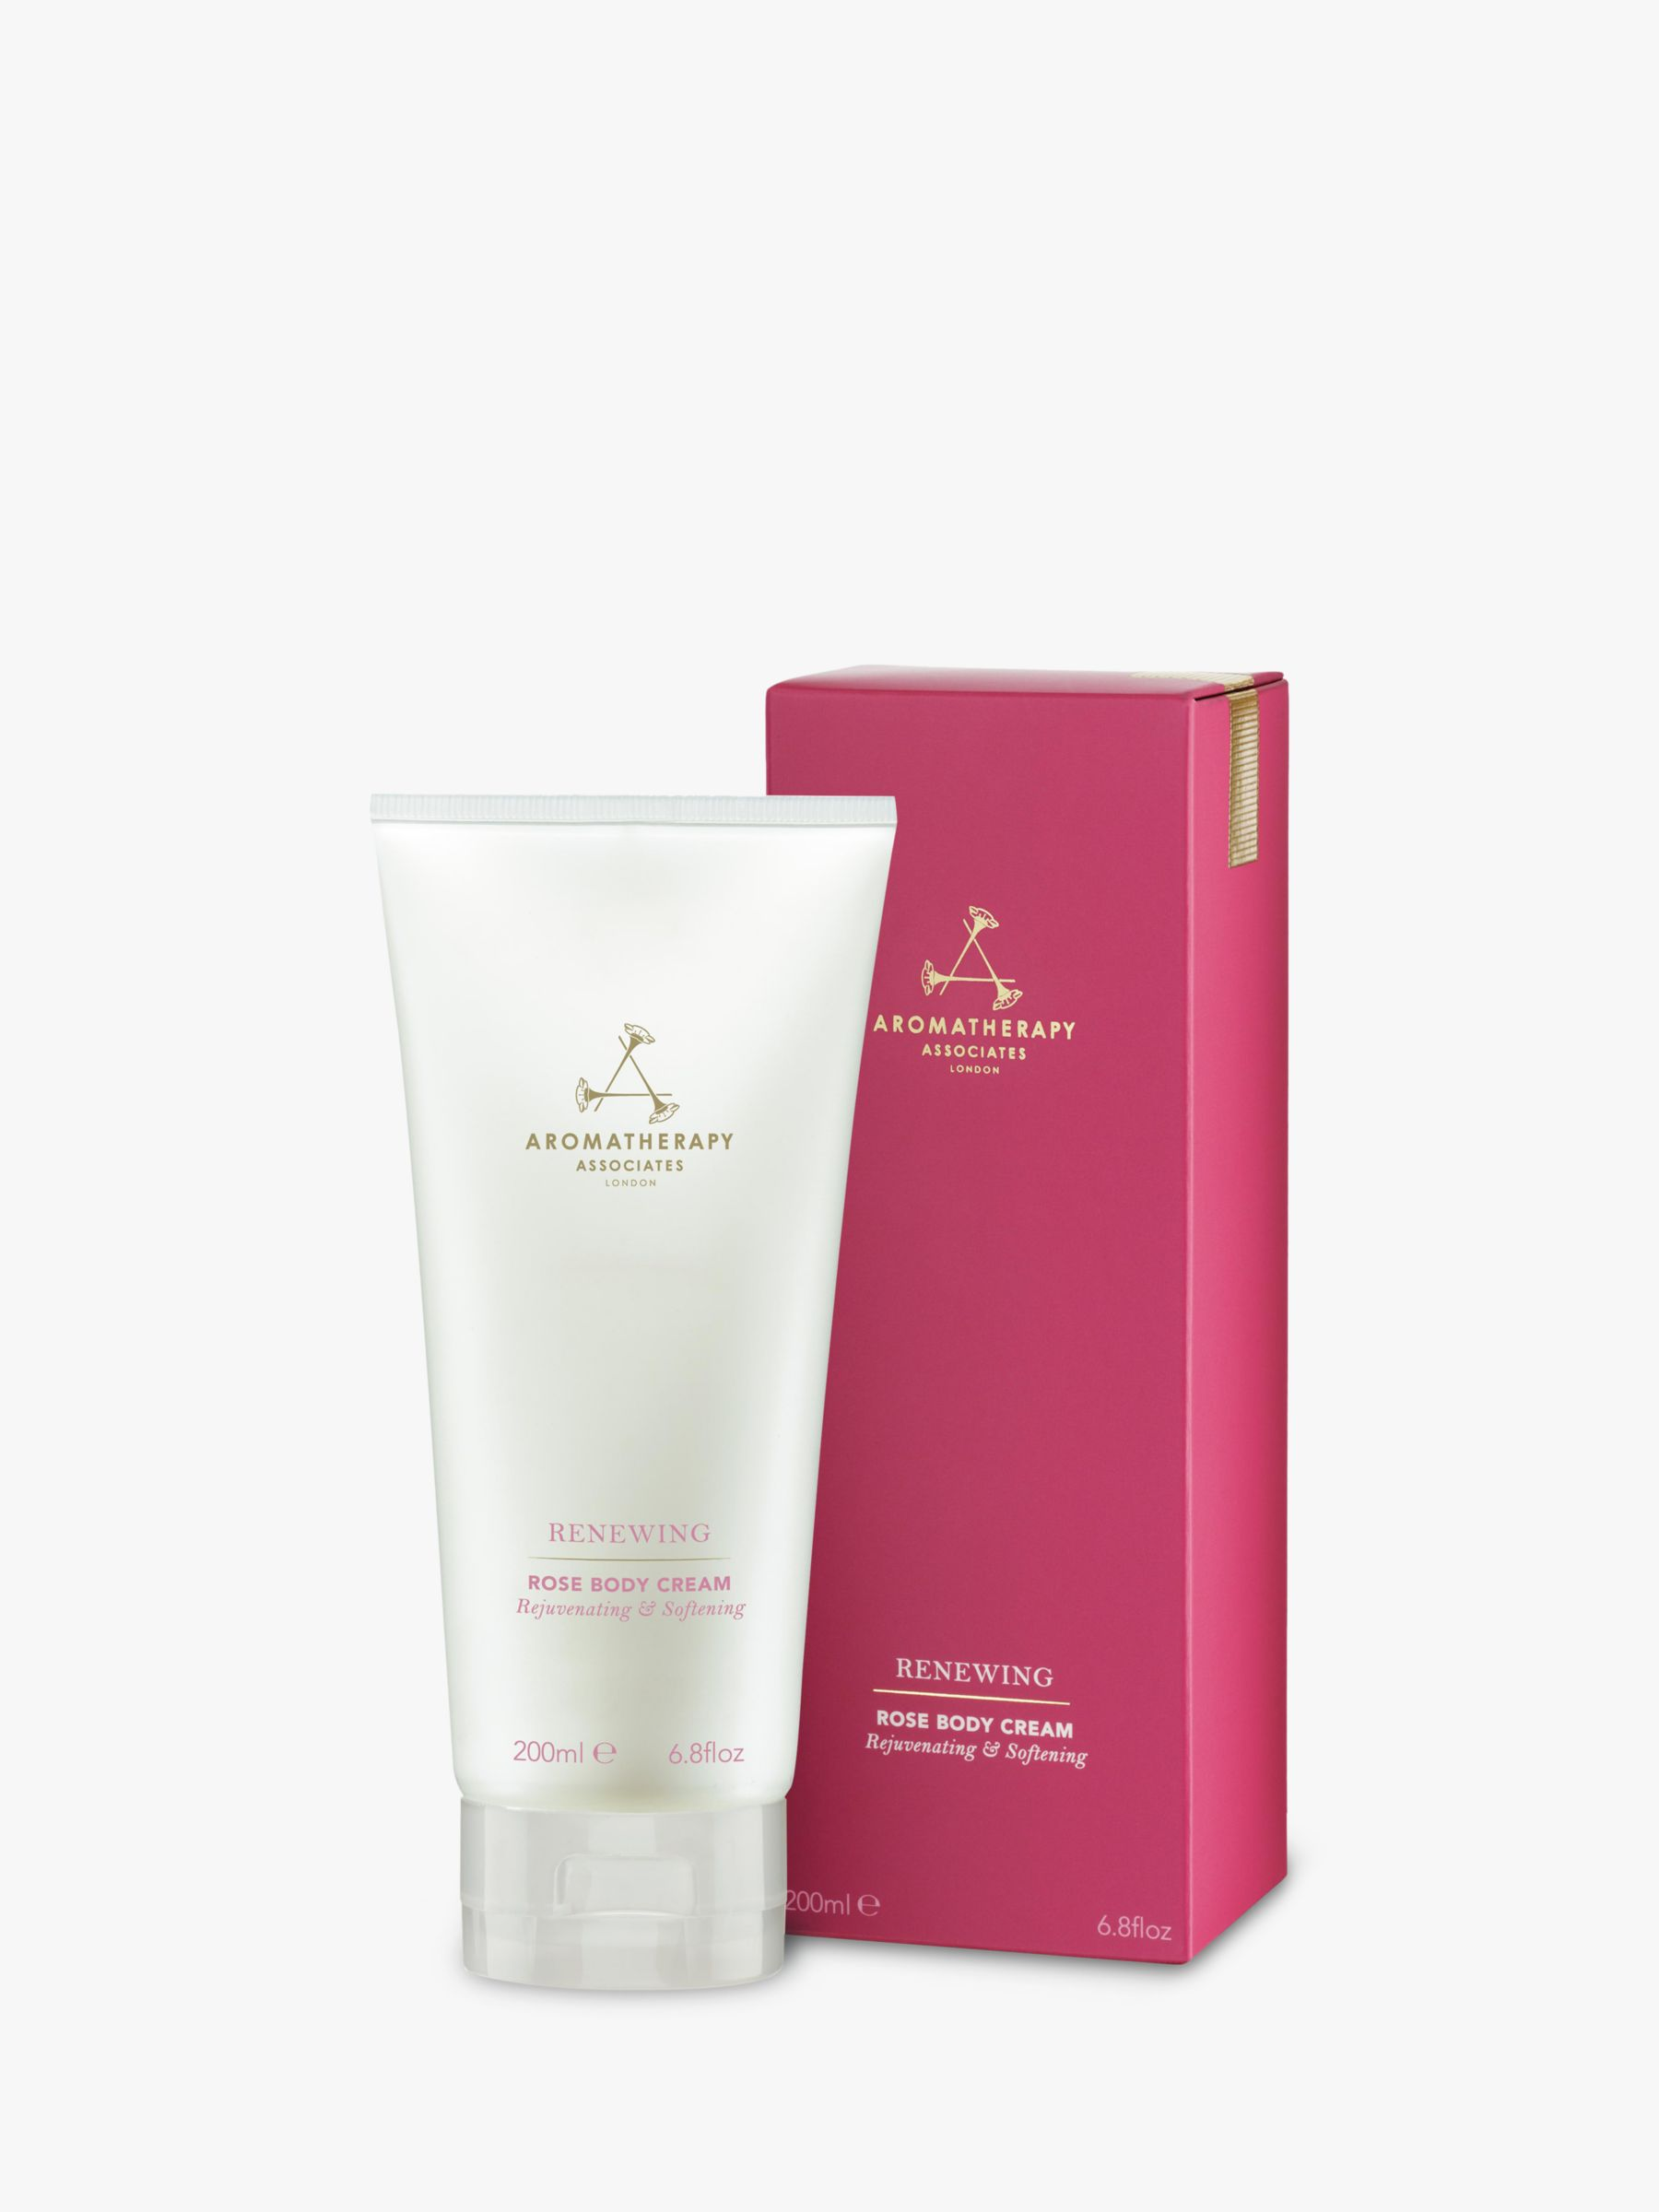 Aromatherapy Associates Renewing Rose Body Cream 200ml